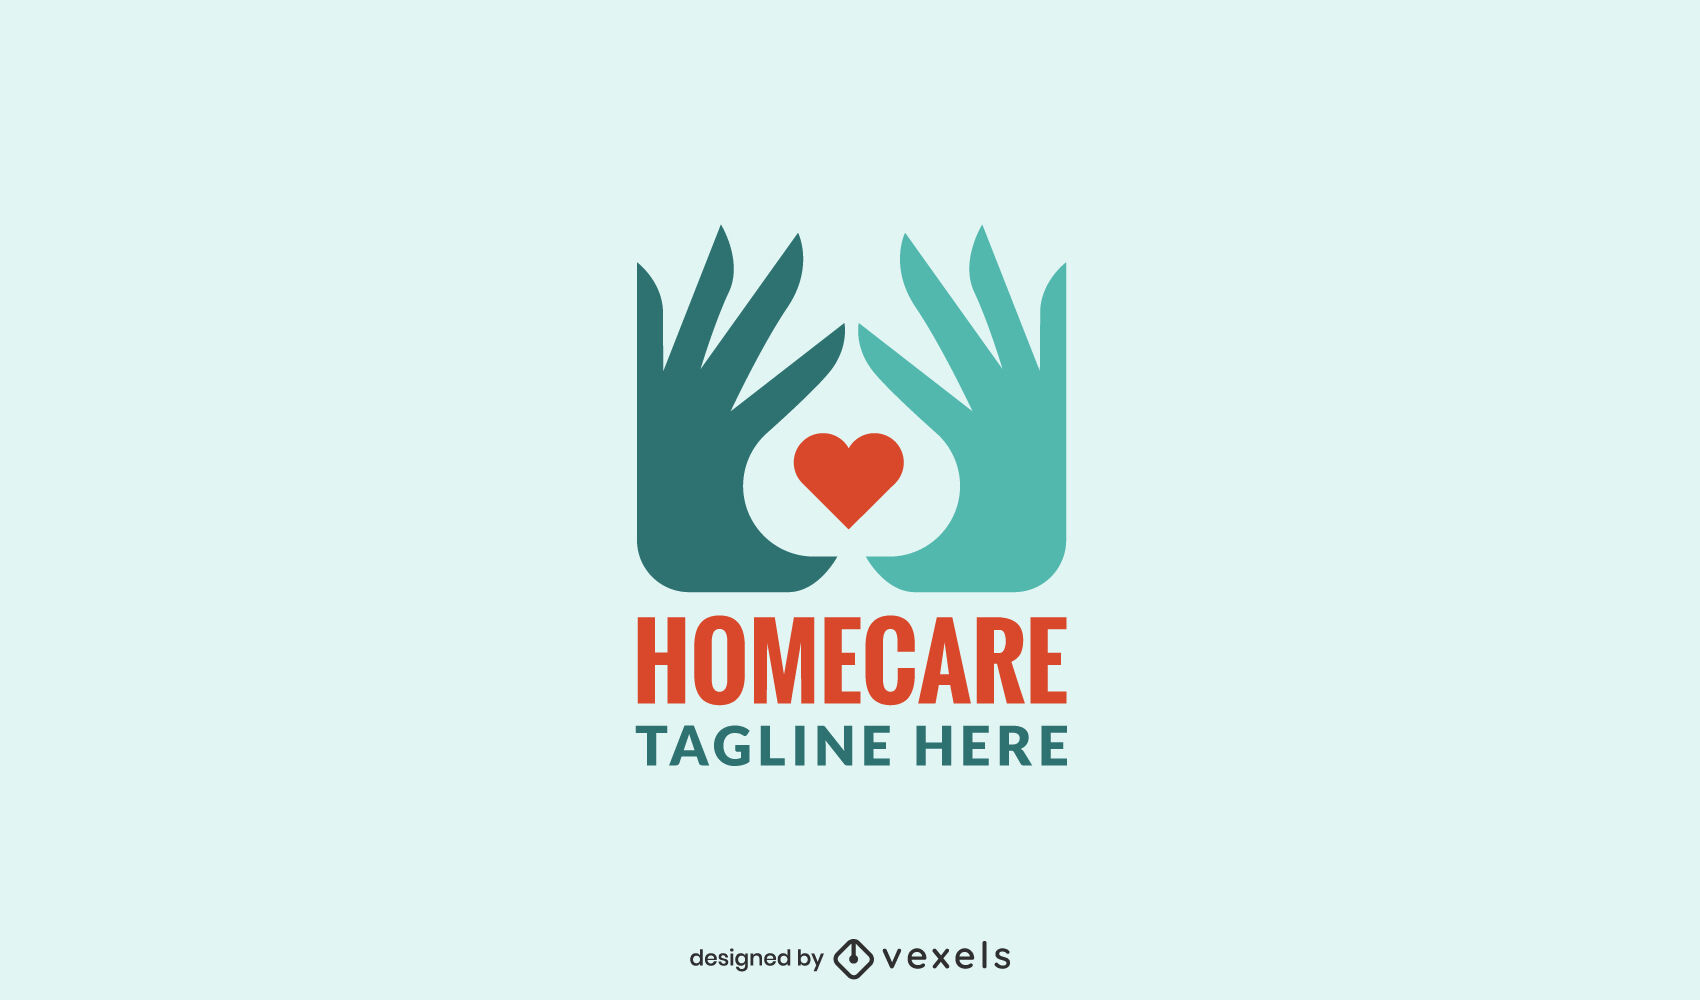 Homecare hands and heart logo template